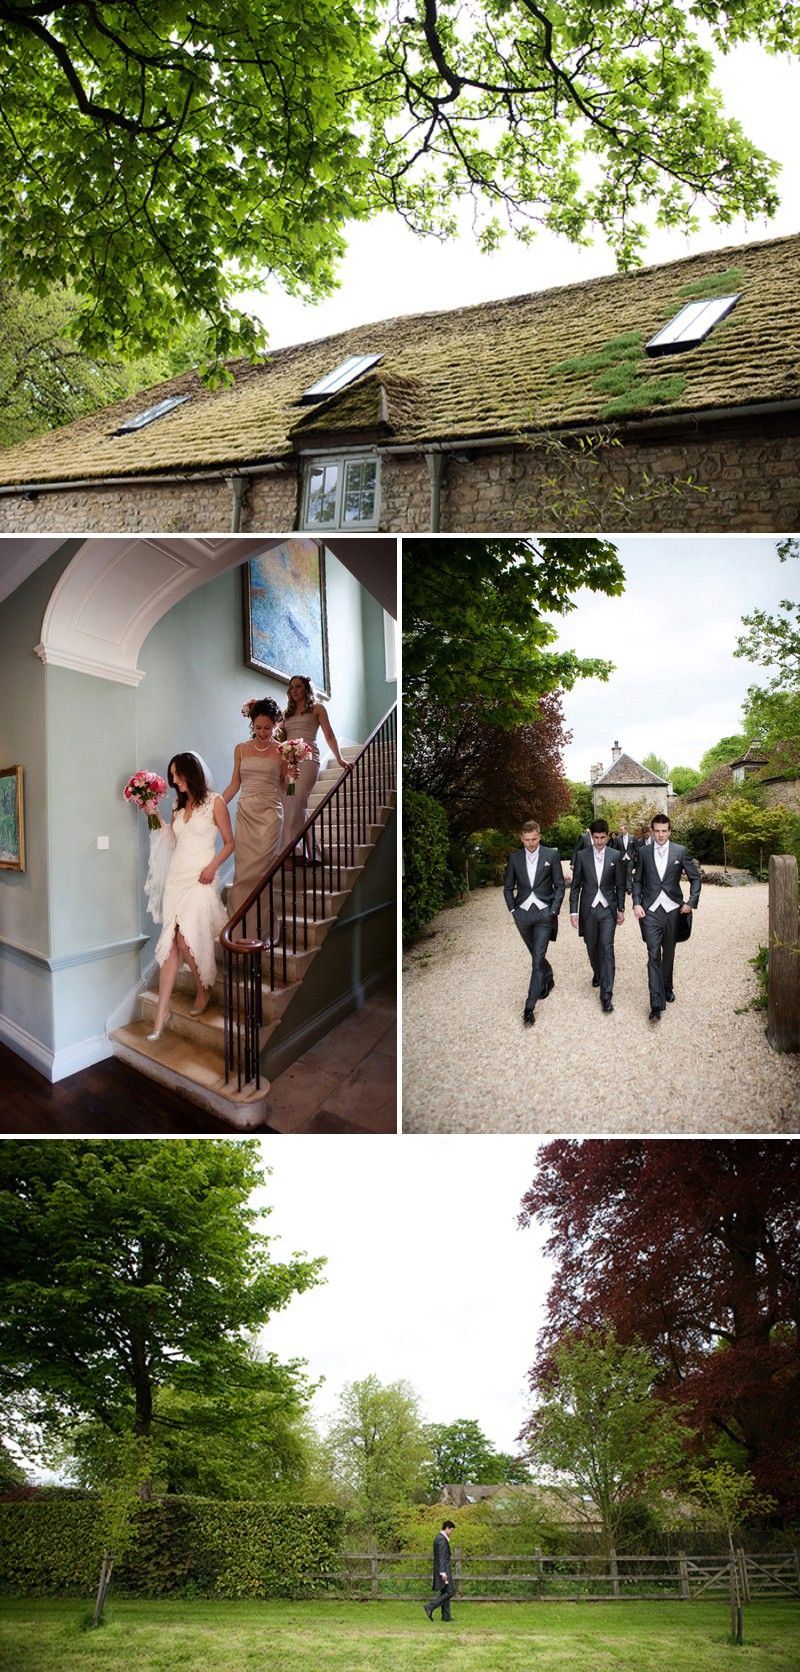 Elegant English Wedding At The Matara Centre In The Cotswolds With A Jenny Lessin Dress And A Pink Bouquet By Lillian & Leonard Wedding Photography._0003